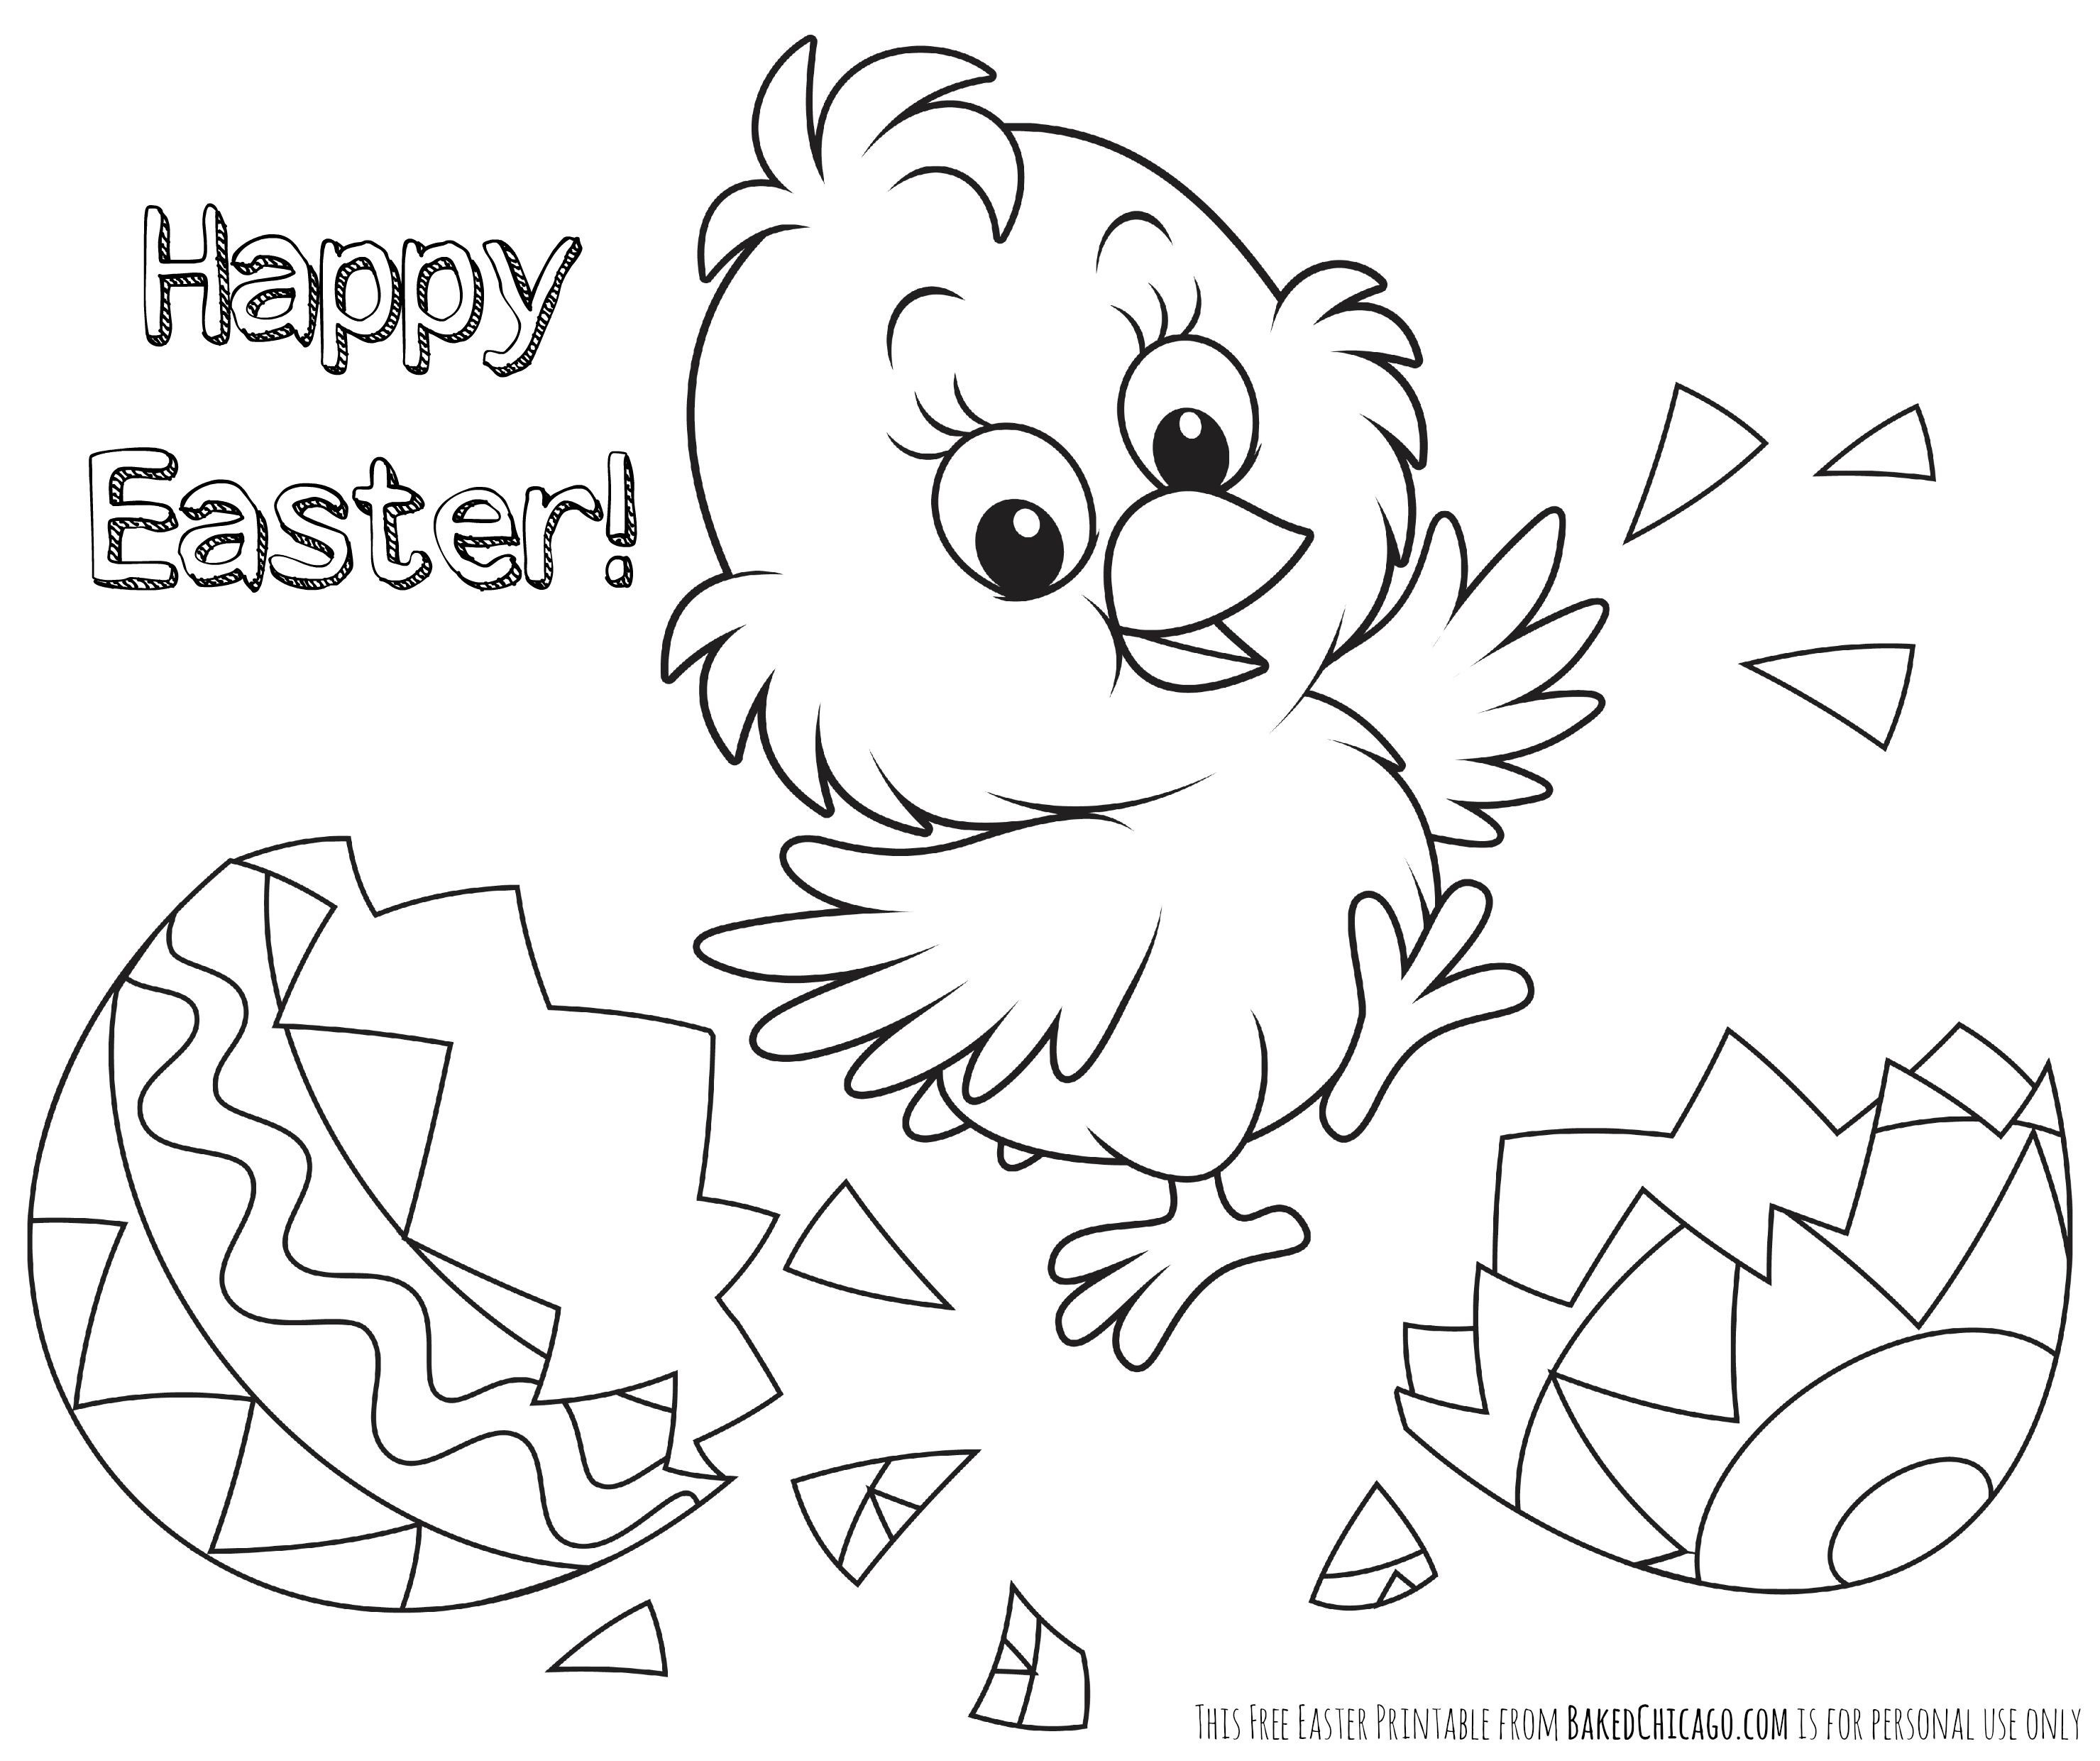 12 Free Printable Easter Coloring Pages | Topsailmultimedia - Free Printable Easter Coloring Pictures